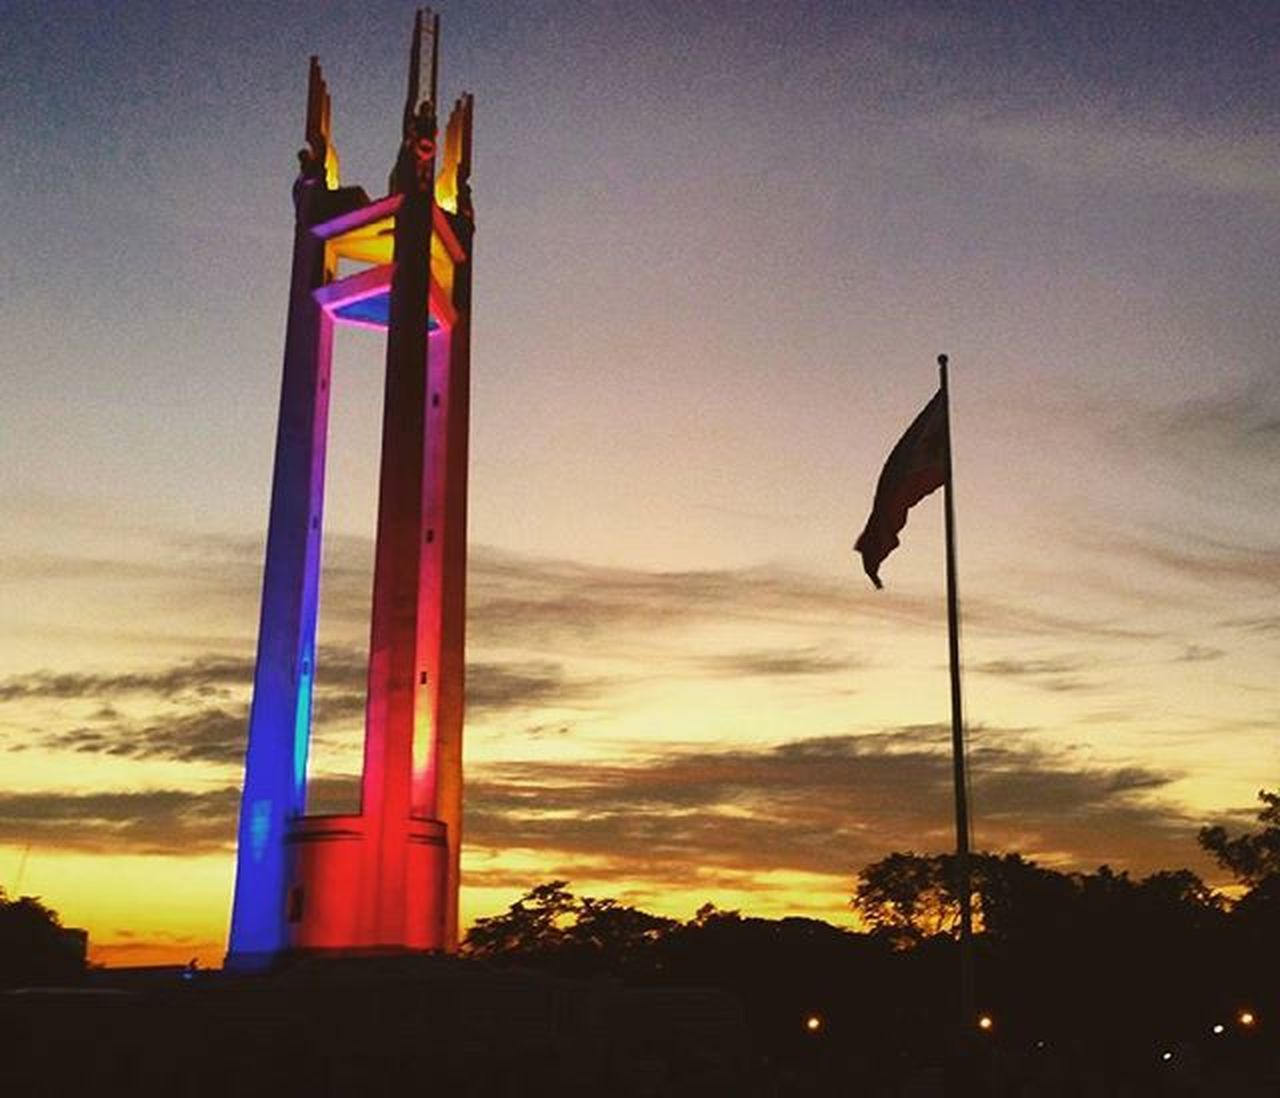 Quezon memorial circle Philippines Quezoncitybased Quezoncity IPhoneography Shutterbug QMCtower Citybranding Citybrand